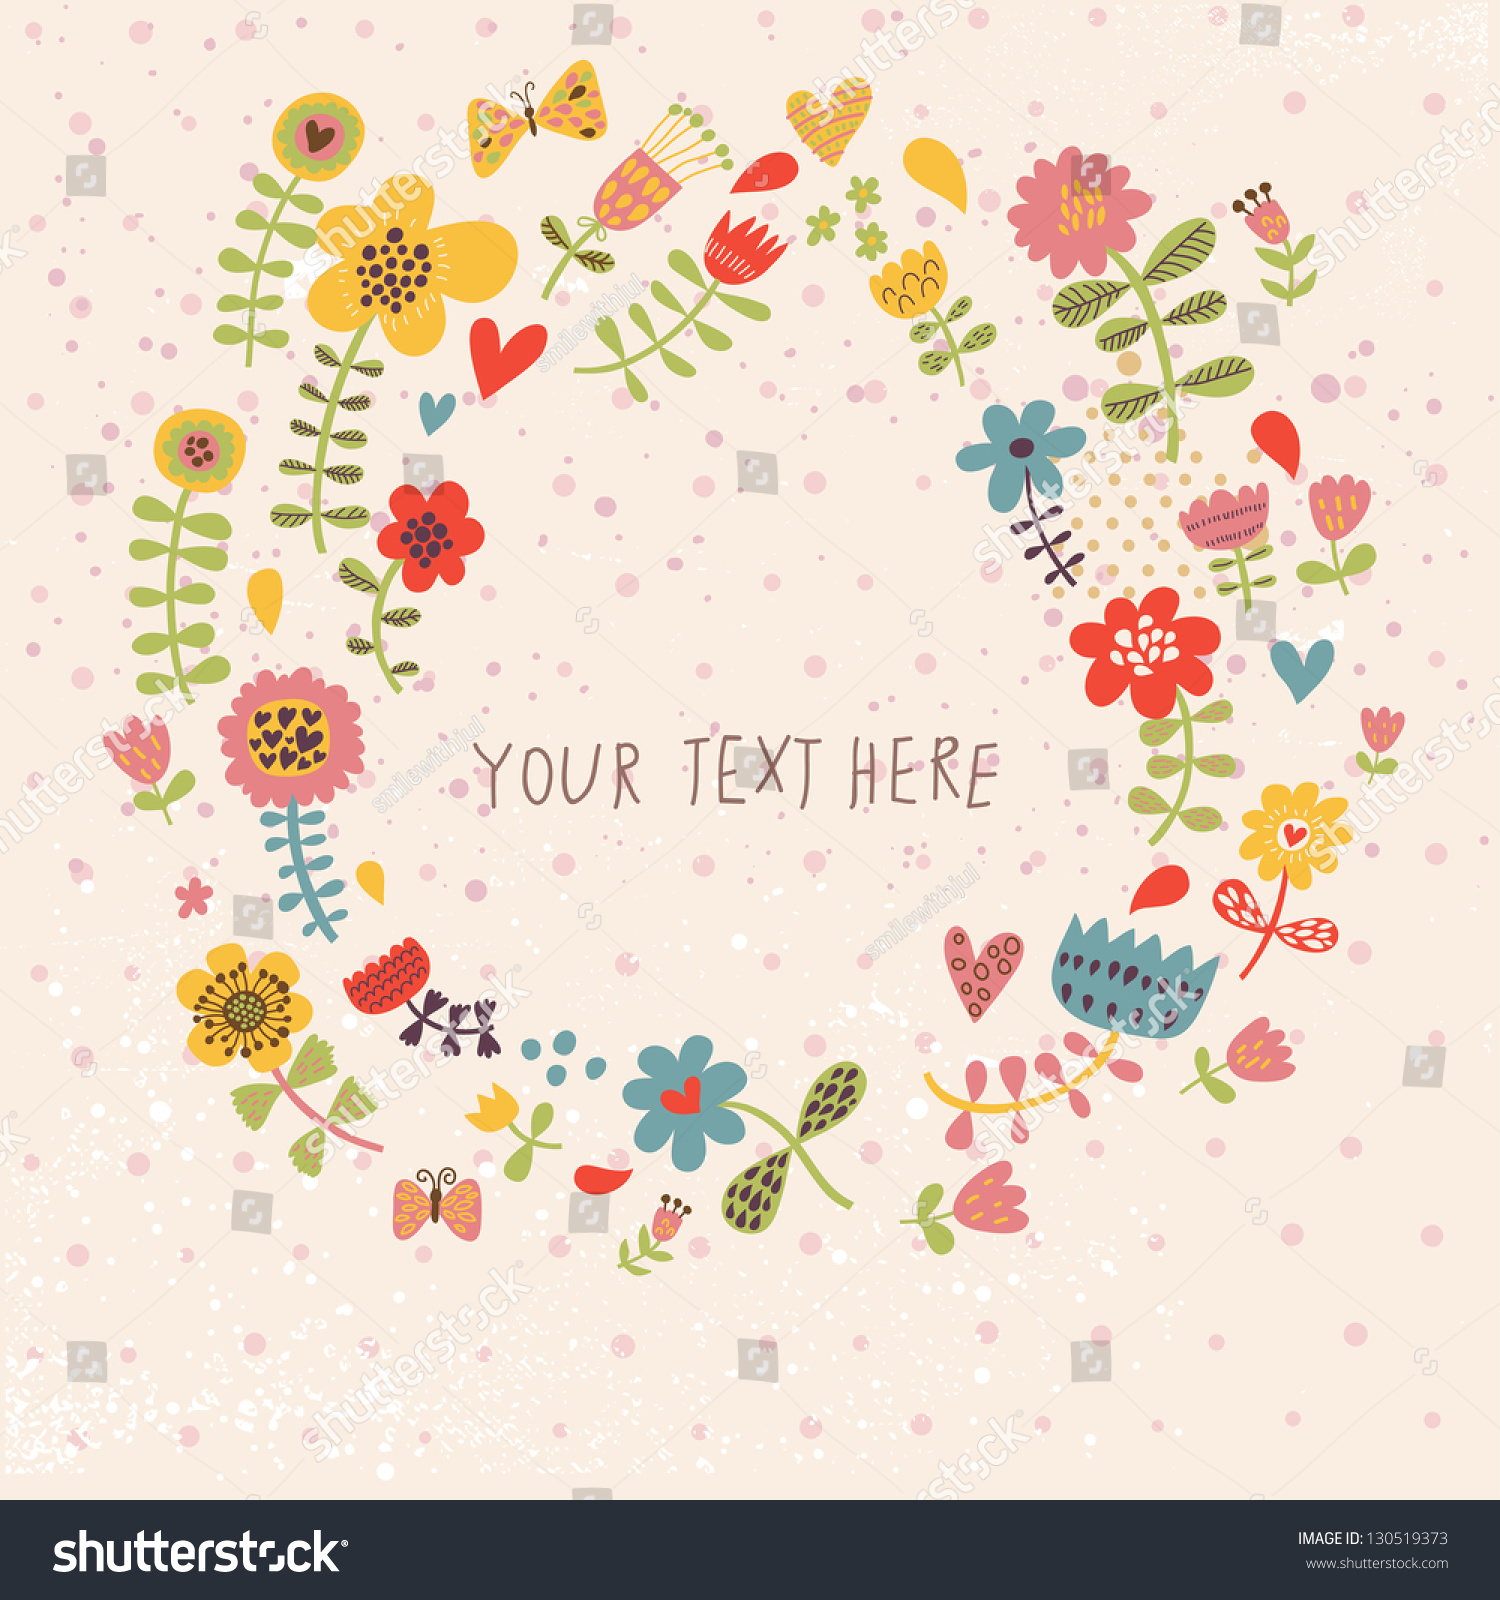 Cute spring flower - Spring Floral Background In Vector Made Of Cute Cartoon Flowers